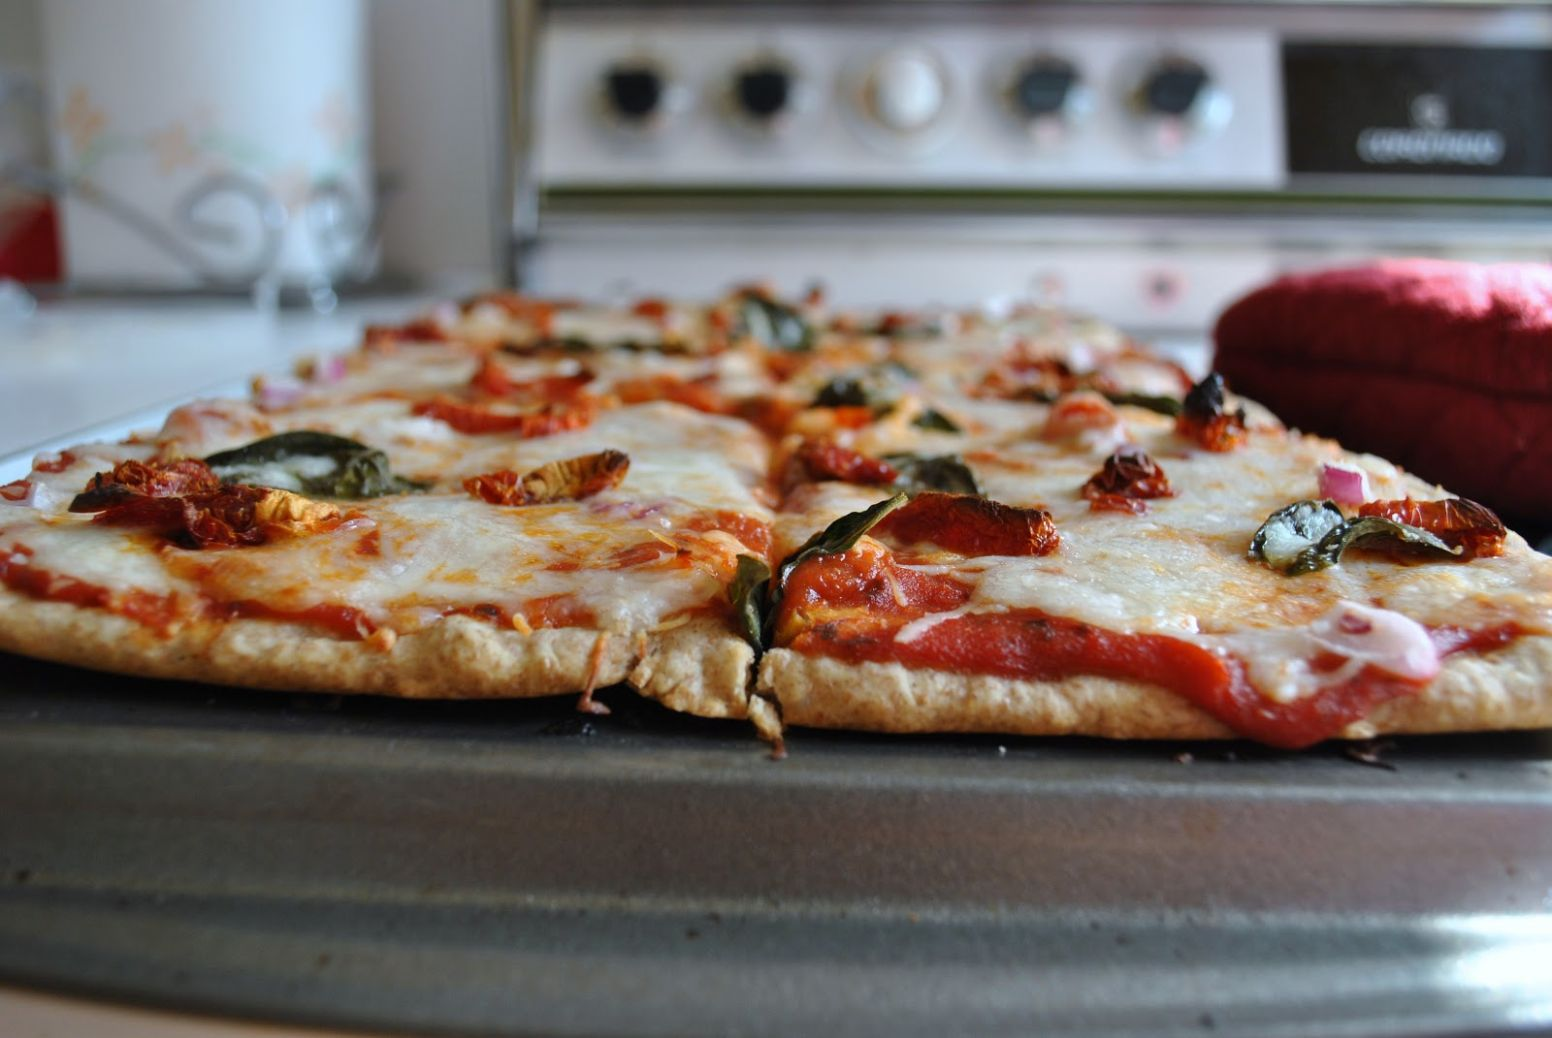 Kristin in Her Kitchen: No-Yeast Pizza Dough with Whole Wheat - Recipes Pizza Base Without Yeast